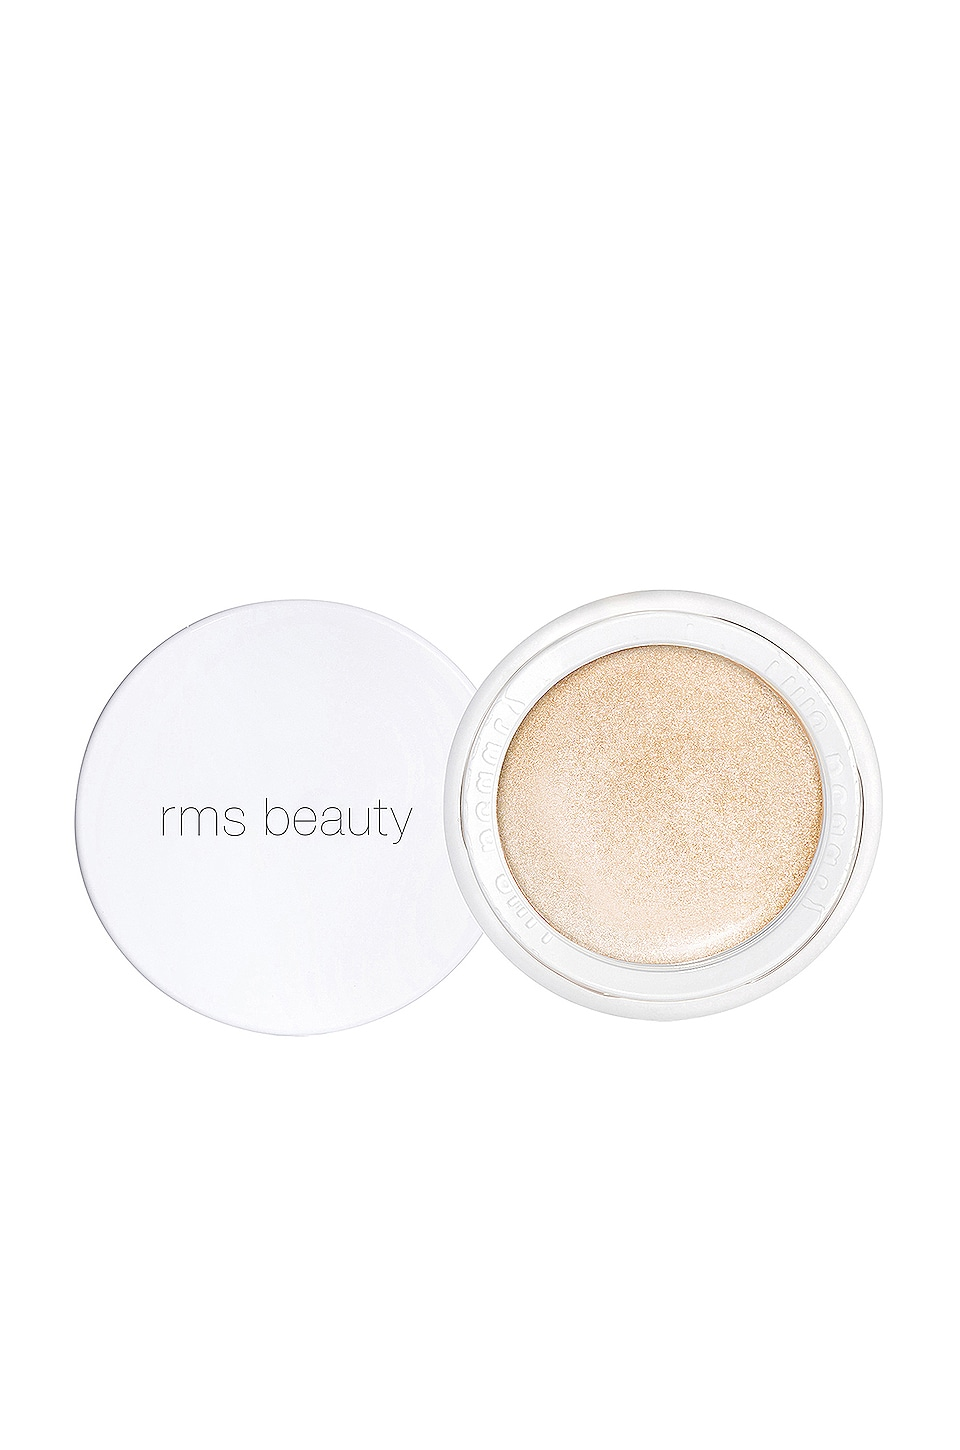 RMS Beauty Eye Polish in Lunar